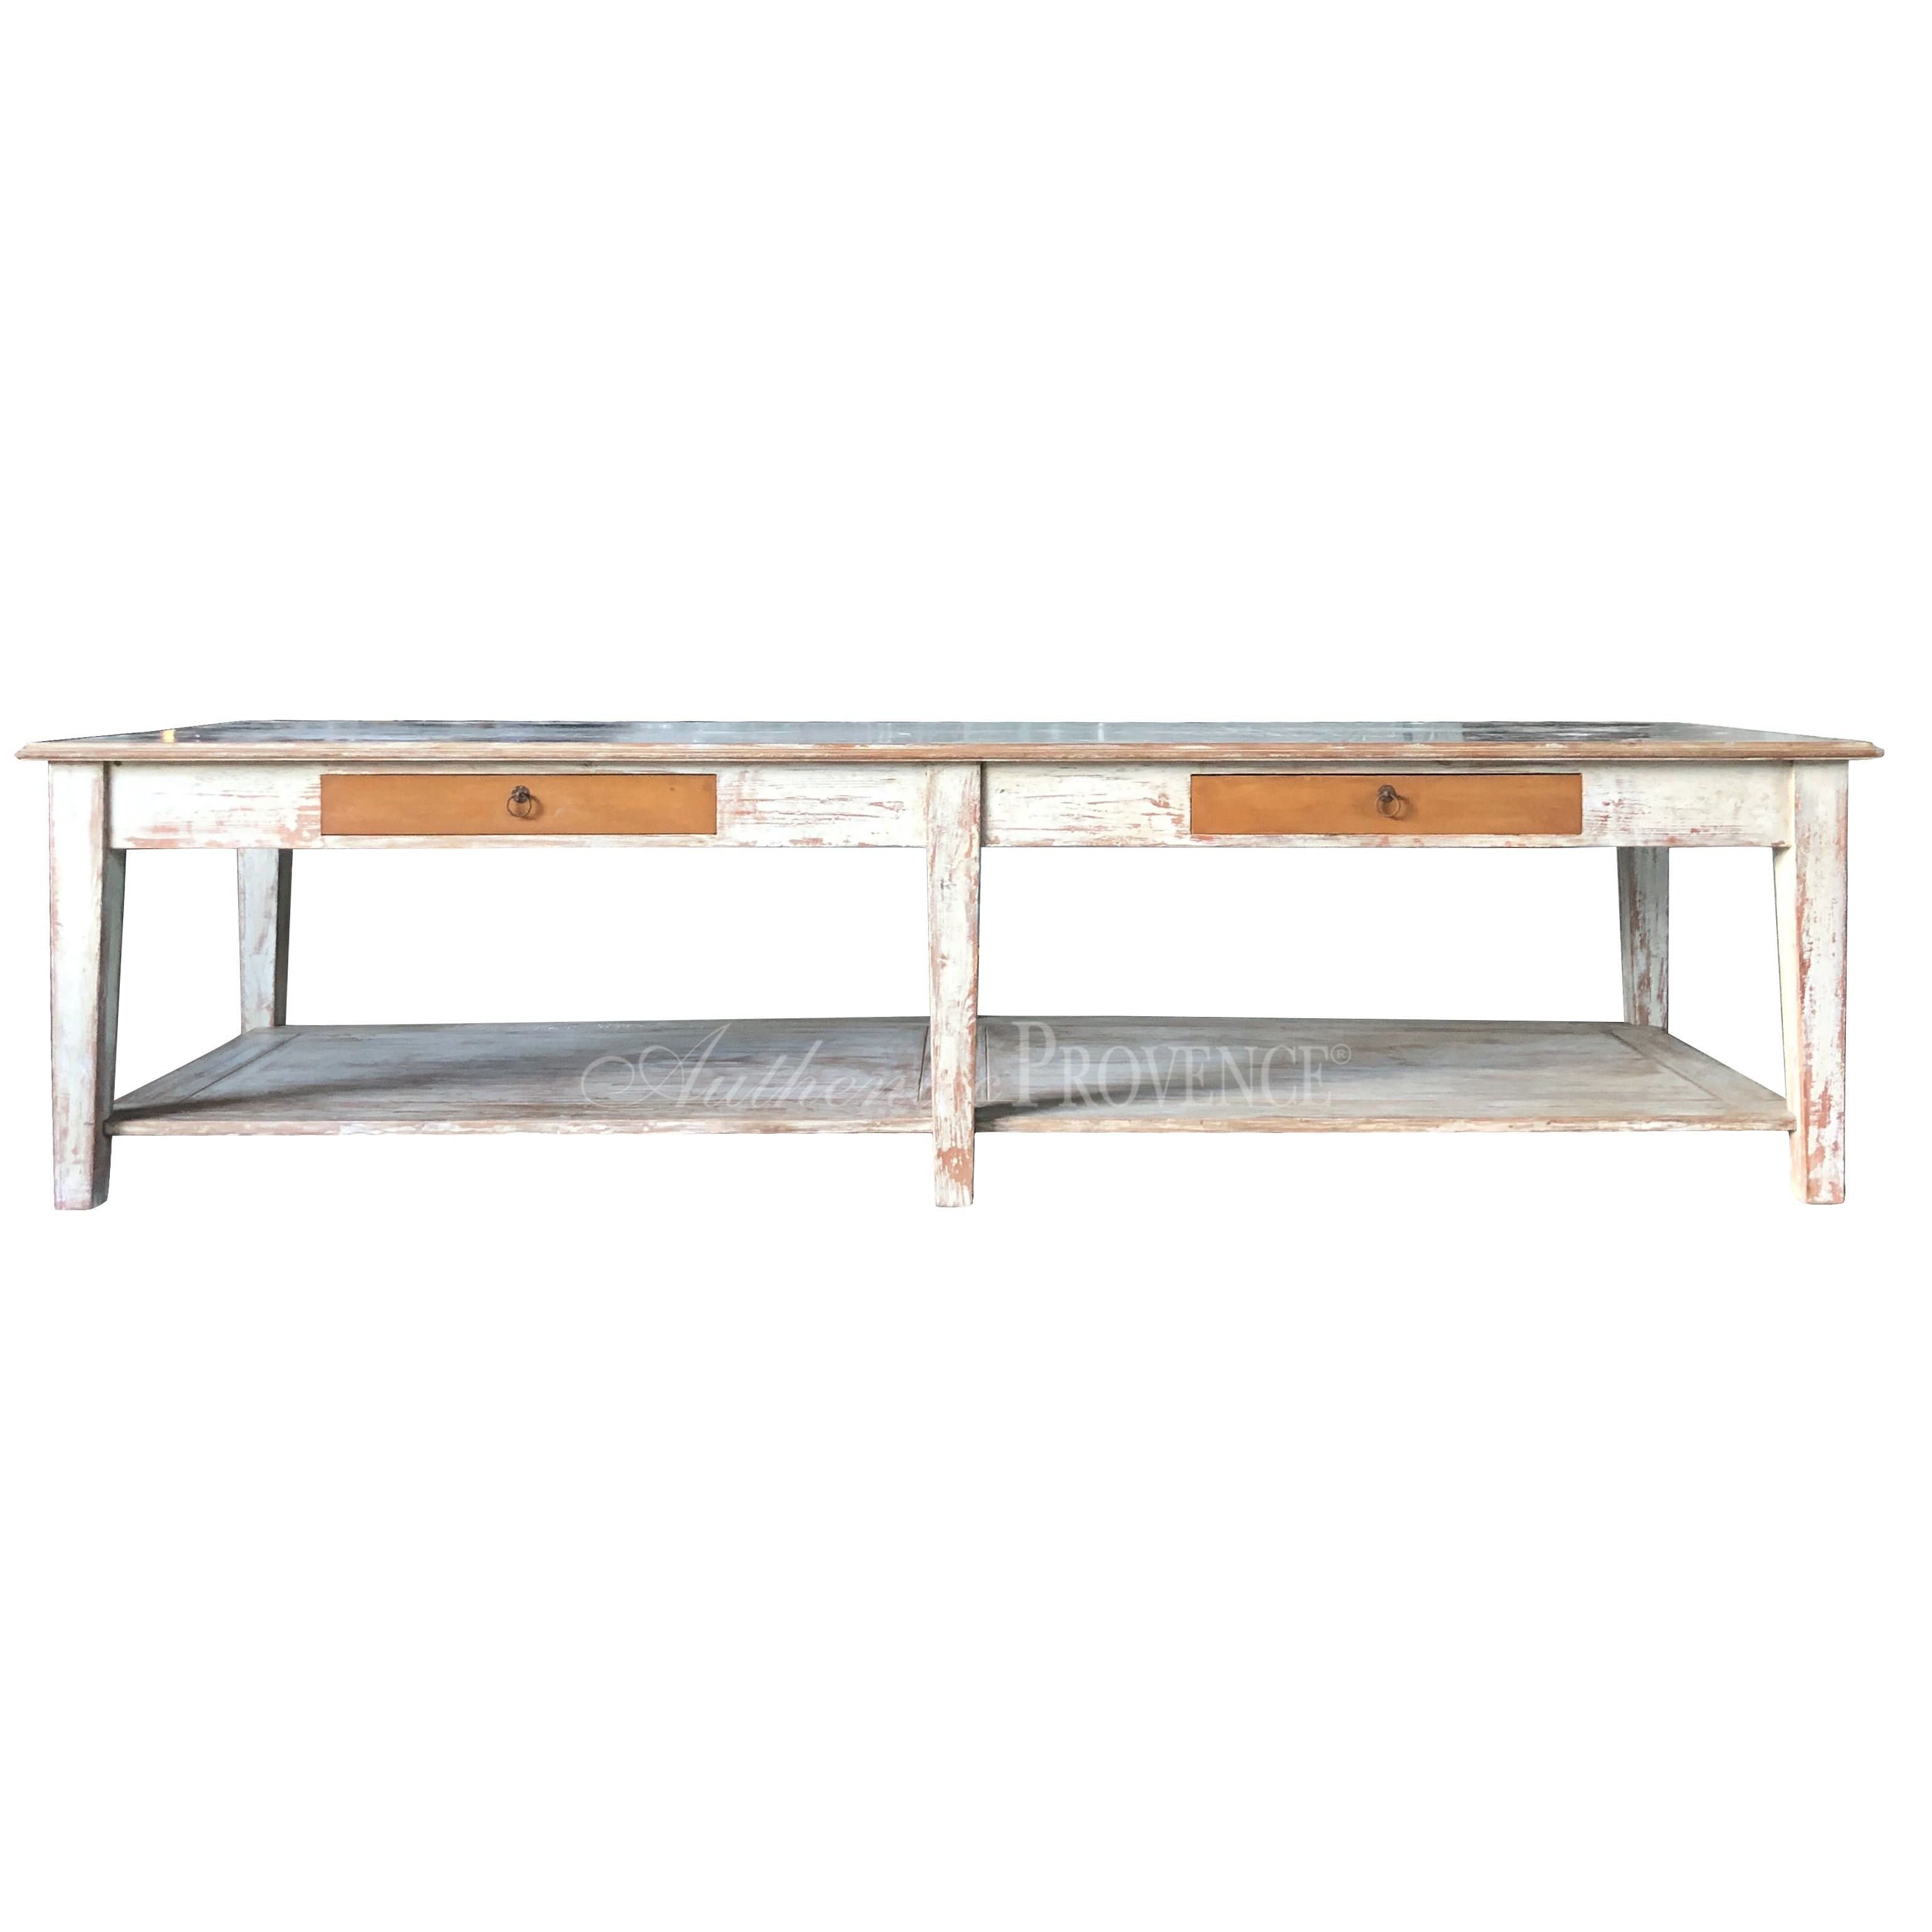 Front view of a large rectangular garden table with rustic galvanized metal top and wooden base with two faux drawers and bottom shelf